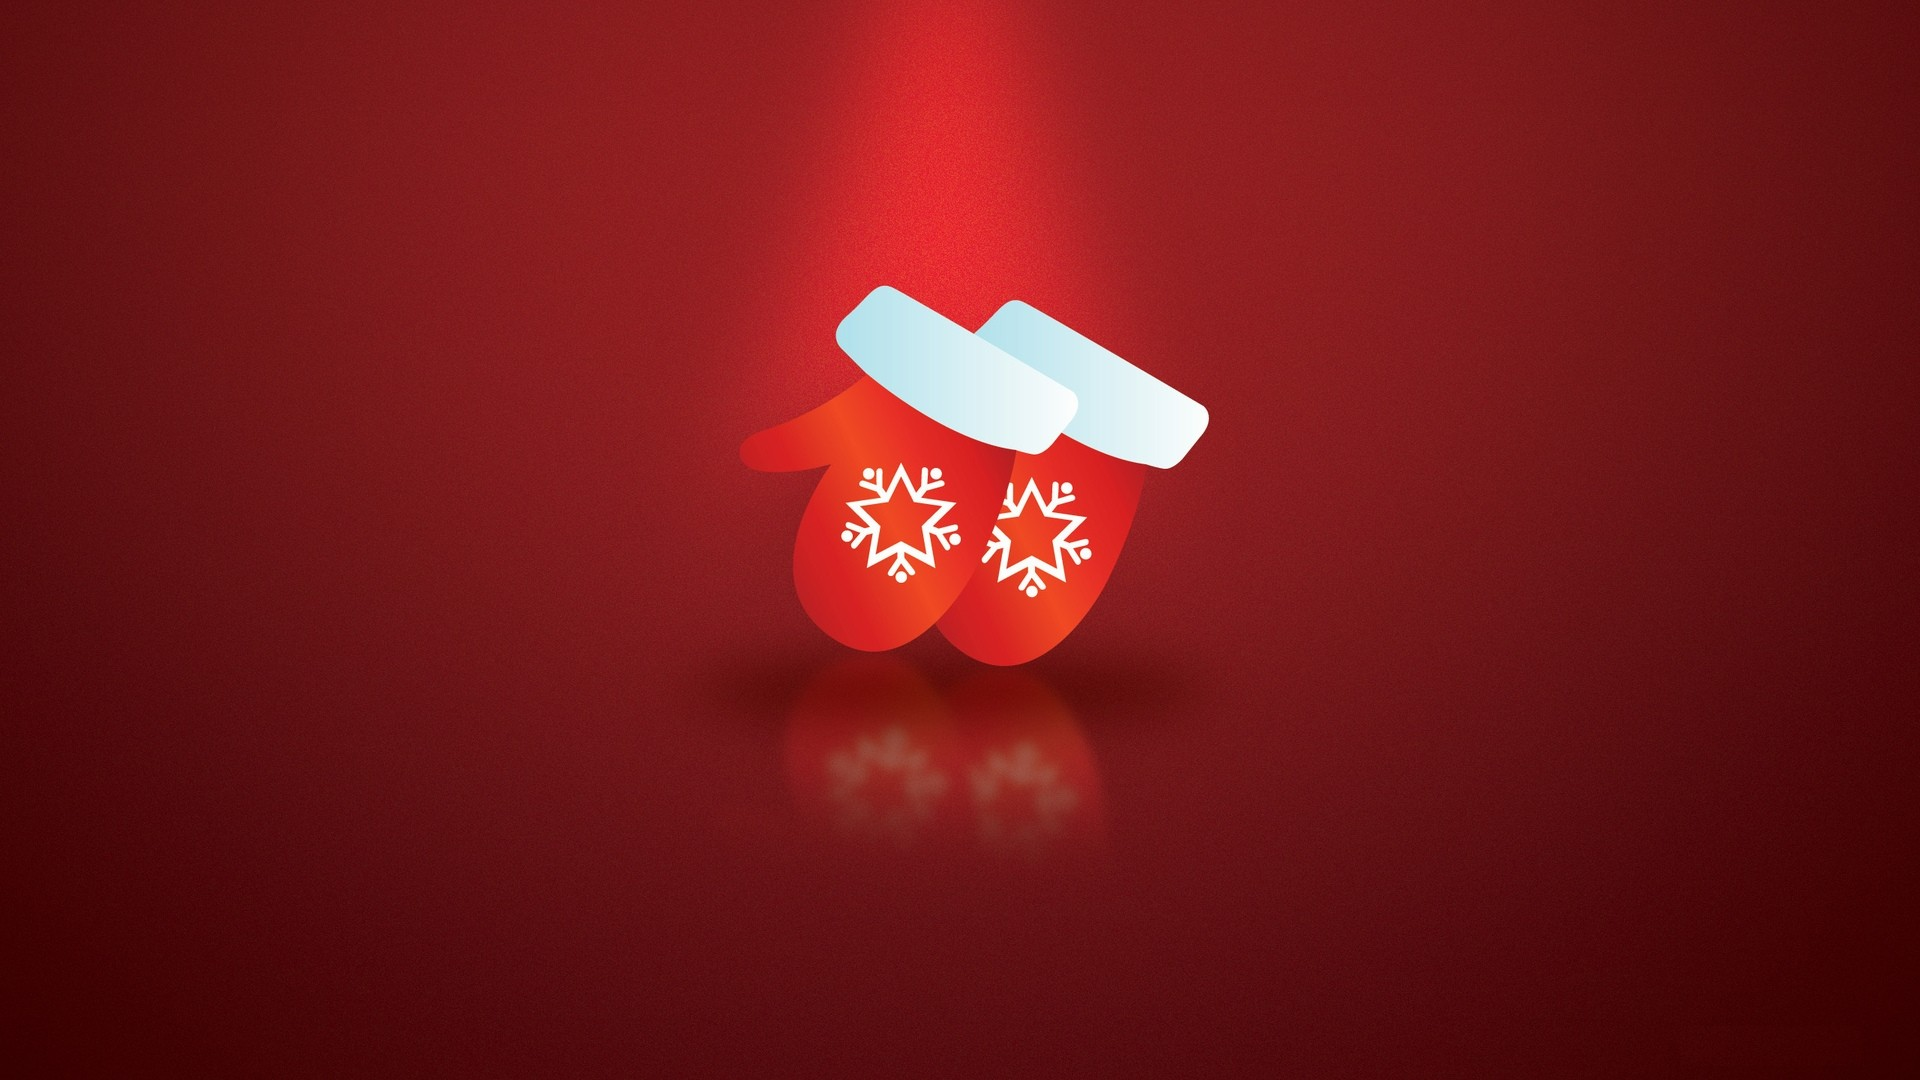 Minimalist Christmas Wallpaper Download Full